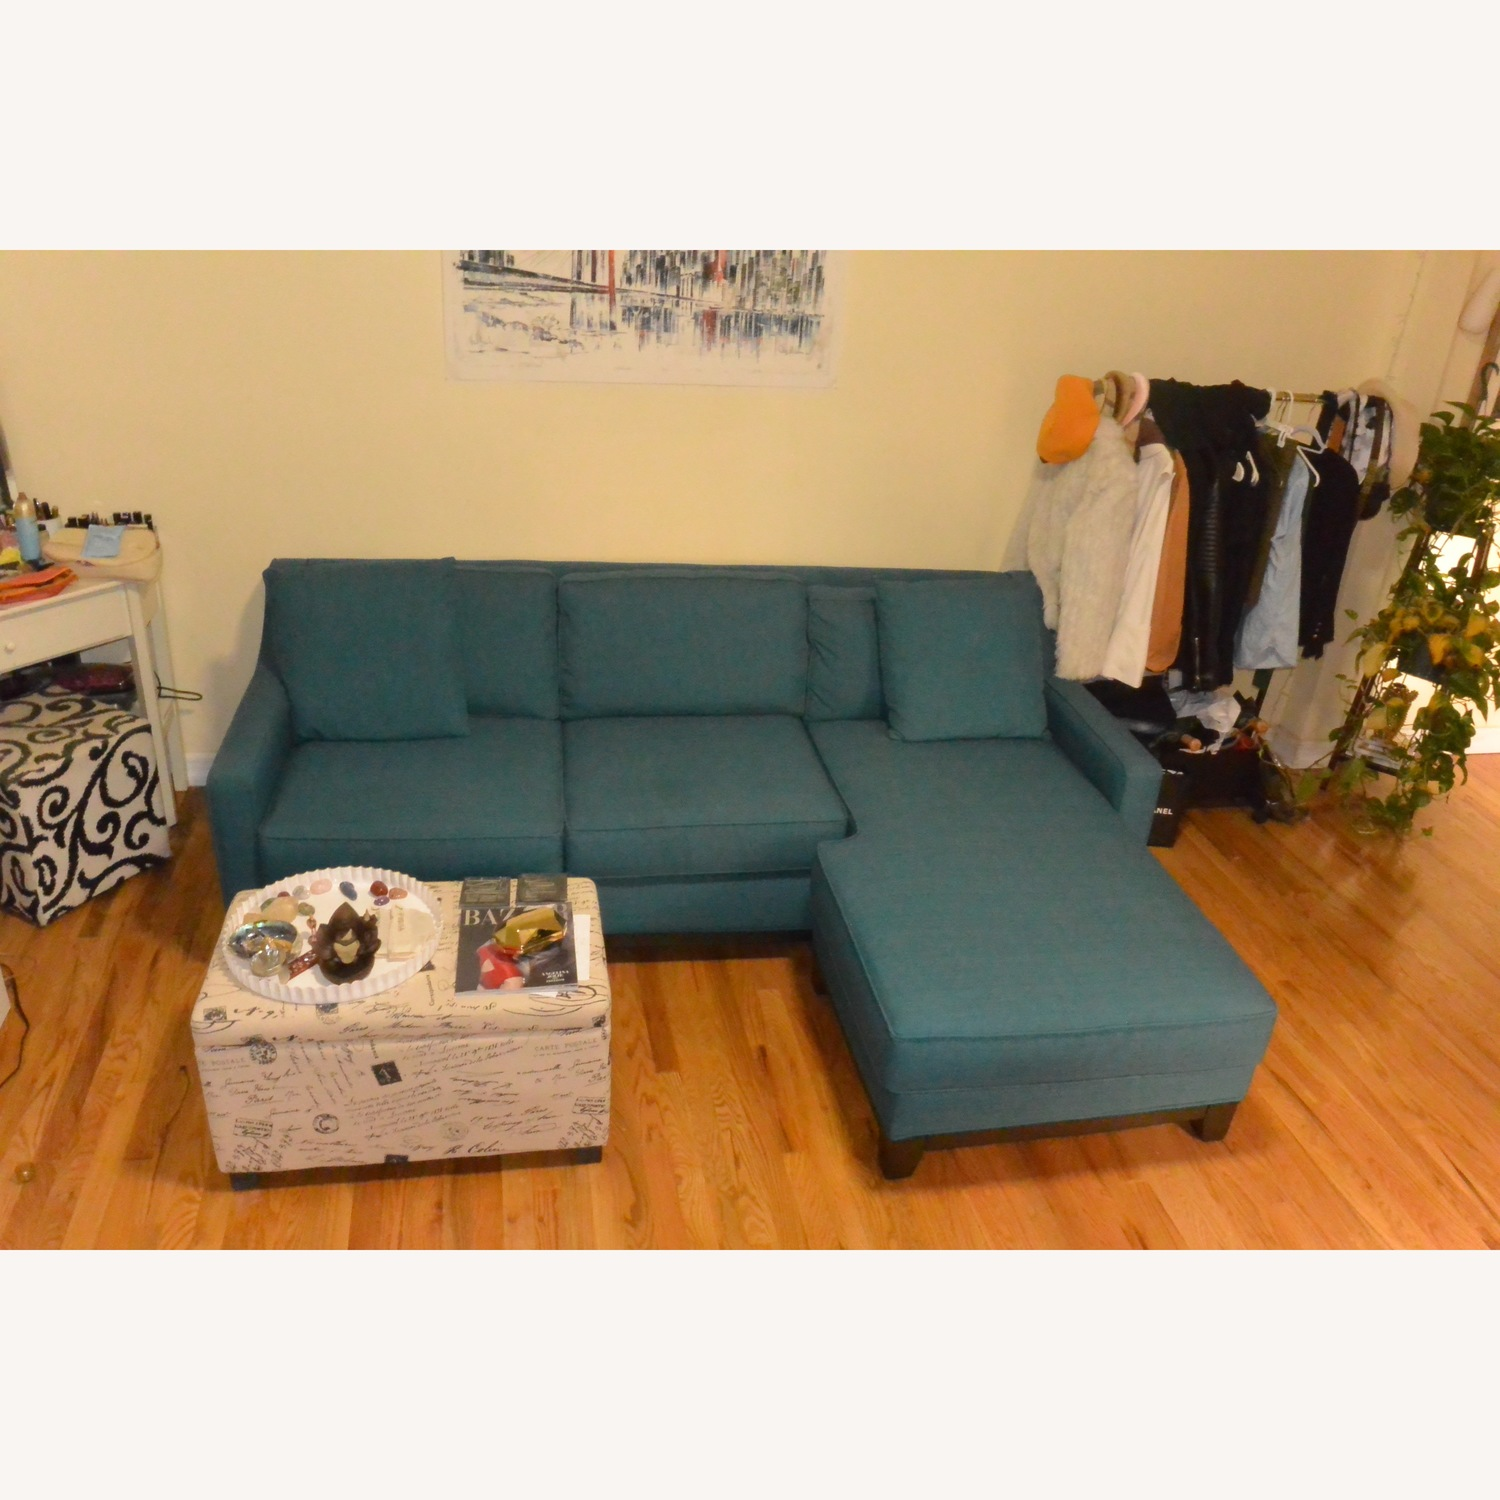 Macy's Keegan Peacock Blue Sectional Sofa w/ Pillows - image-1